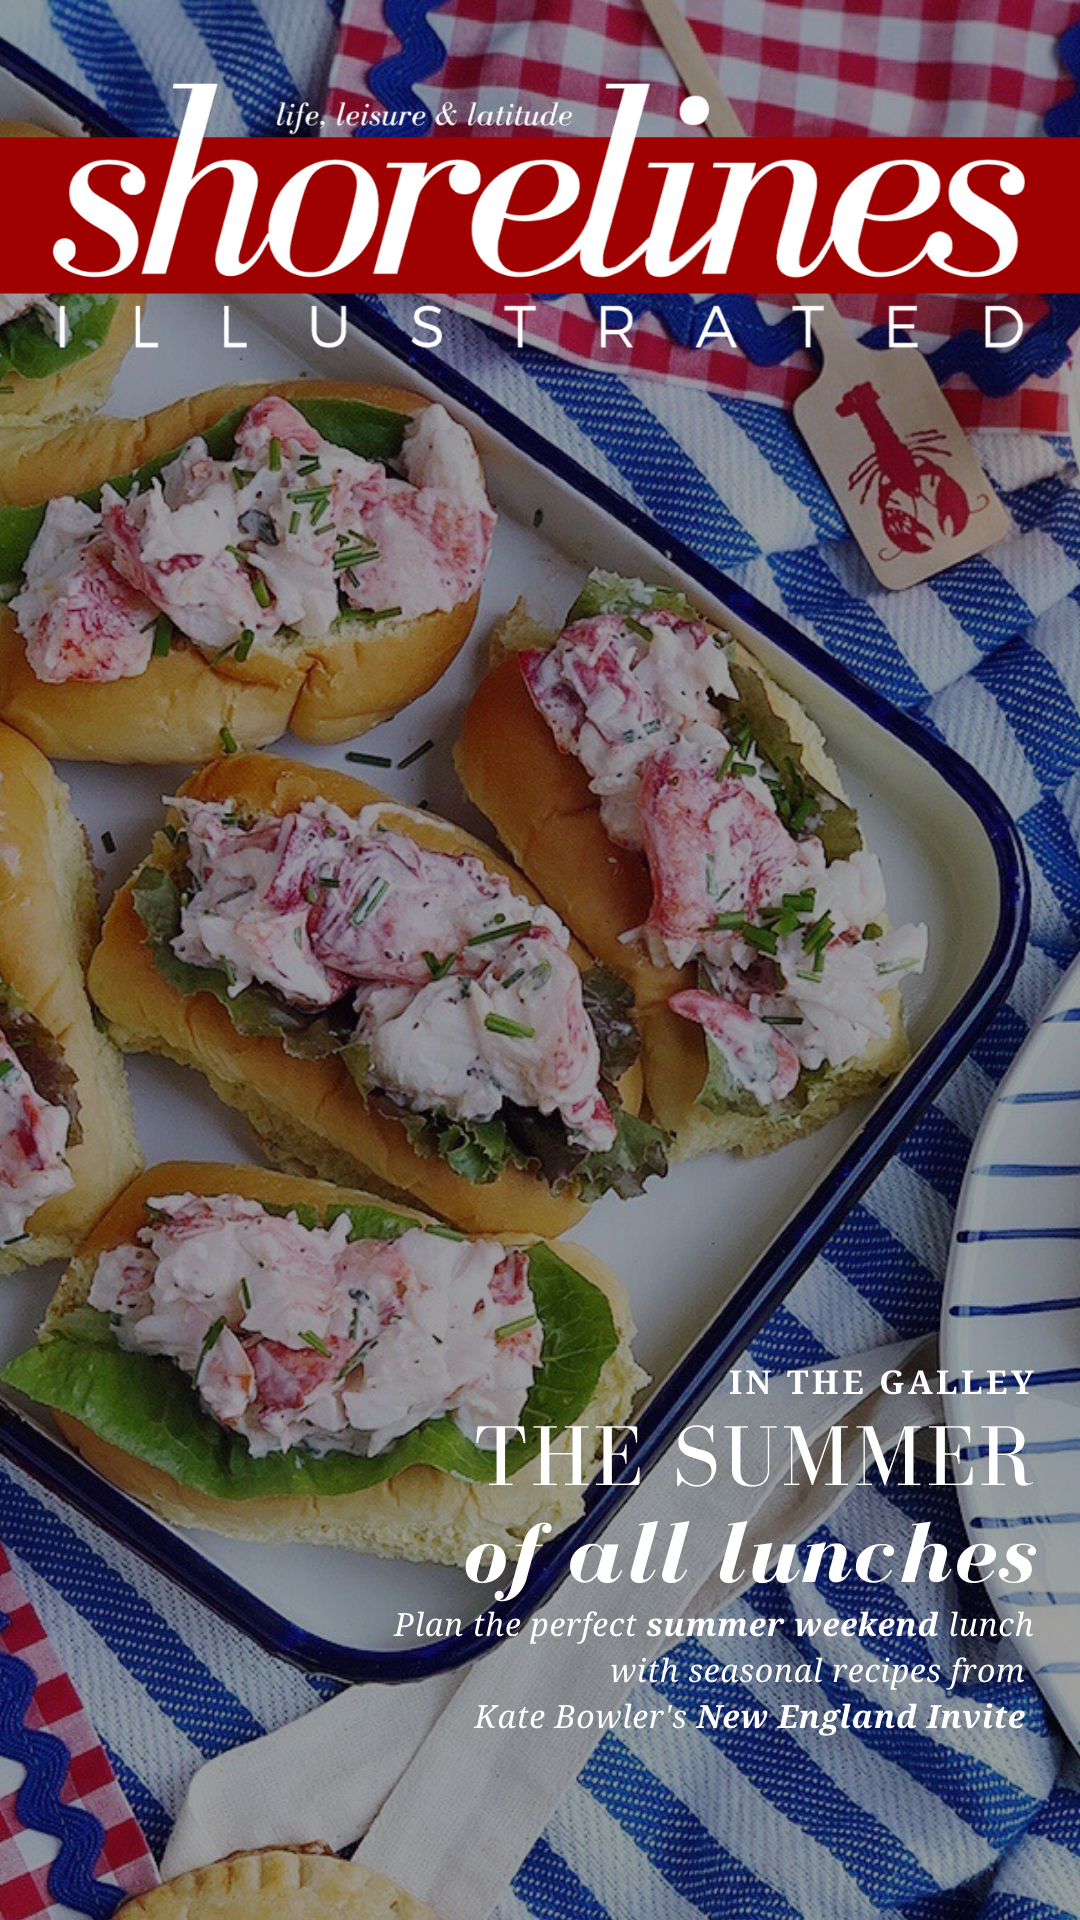 Classic_Summertime_Lunch_Menu_Lobster_Rolls_Kate_Bowler_New_England_Invite_1